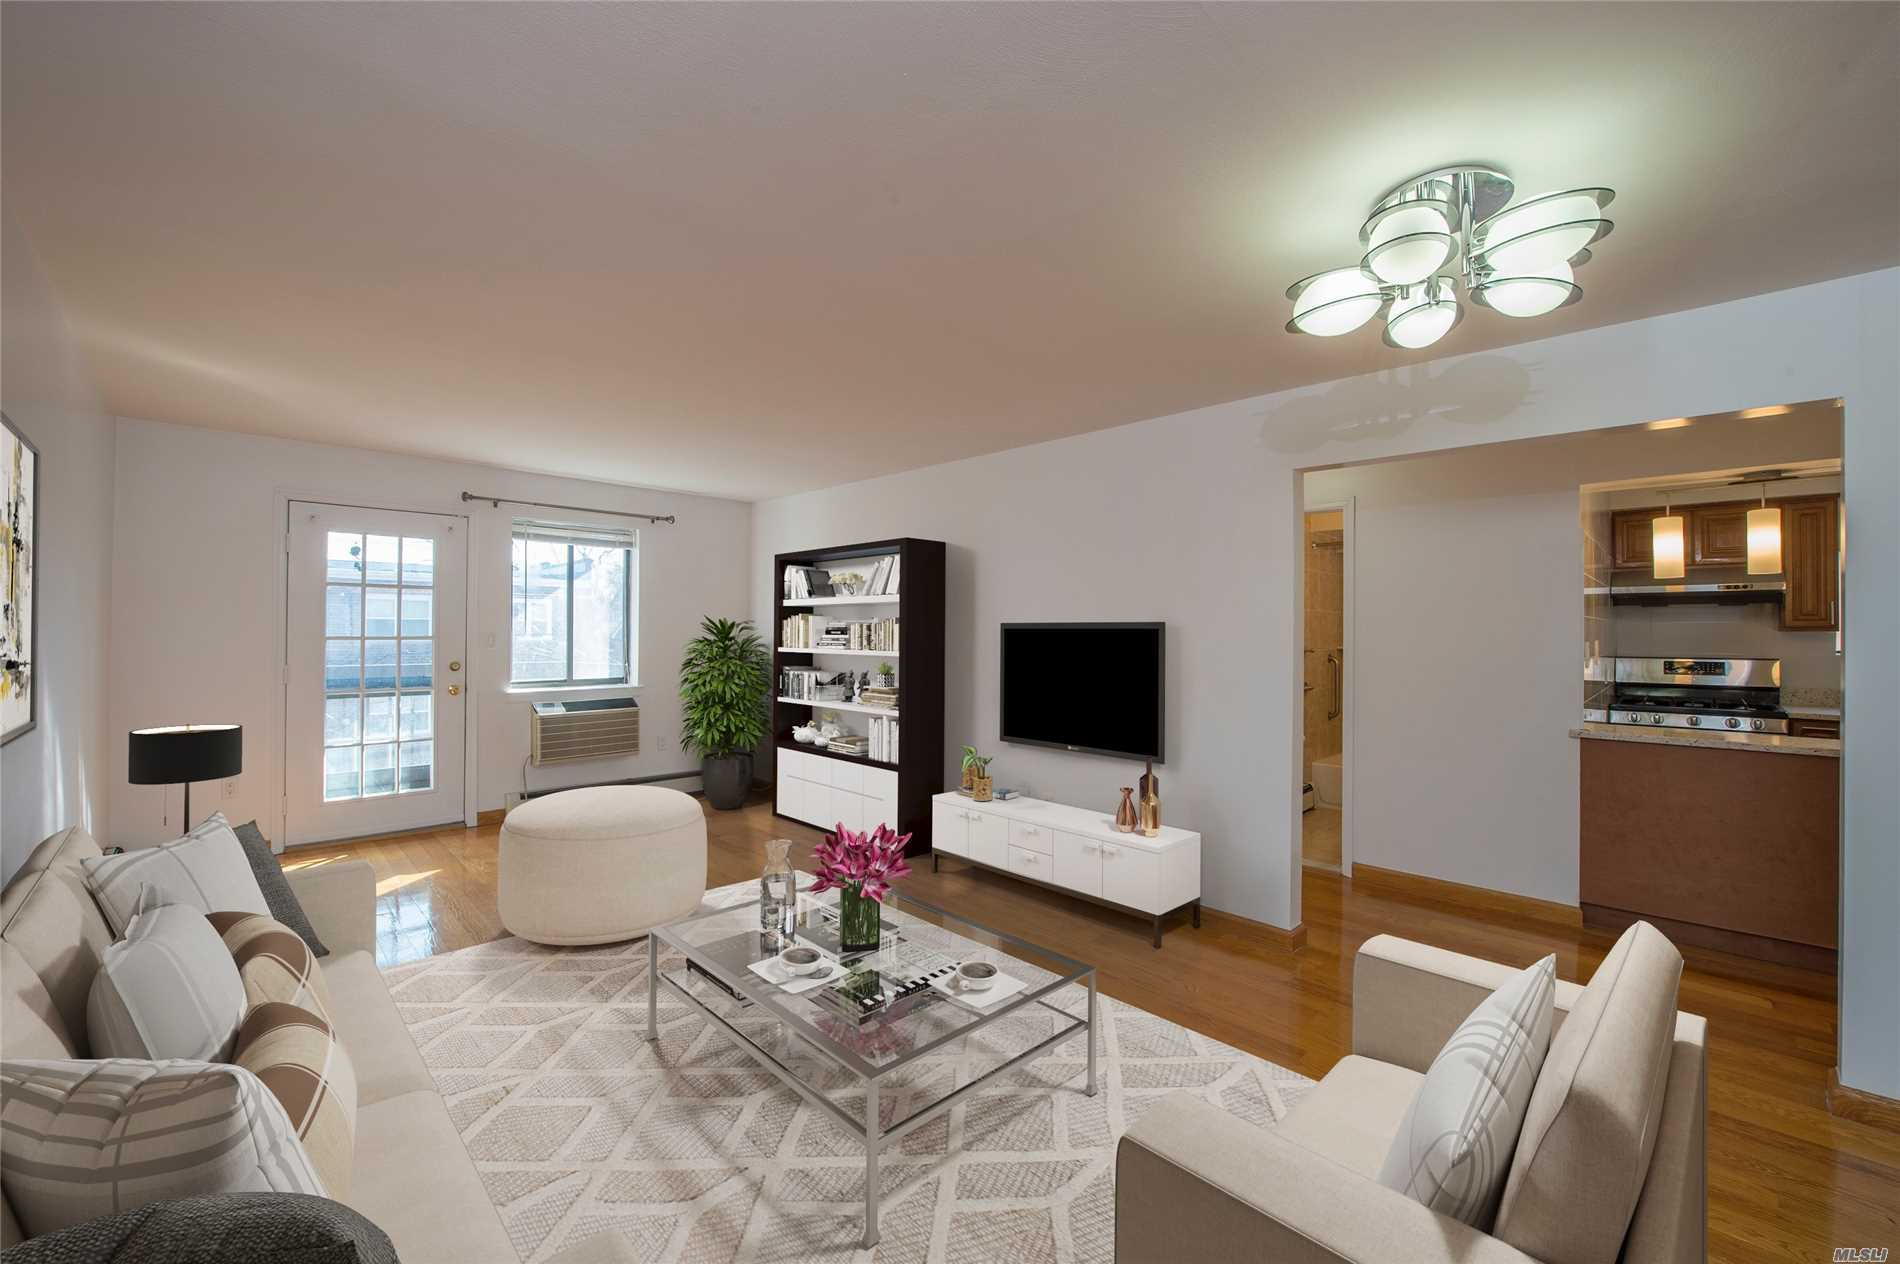 36-21 193rd St 11358 - One of Flushing Homes for Sale